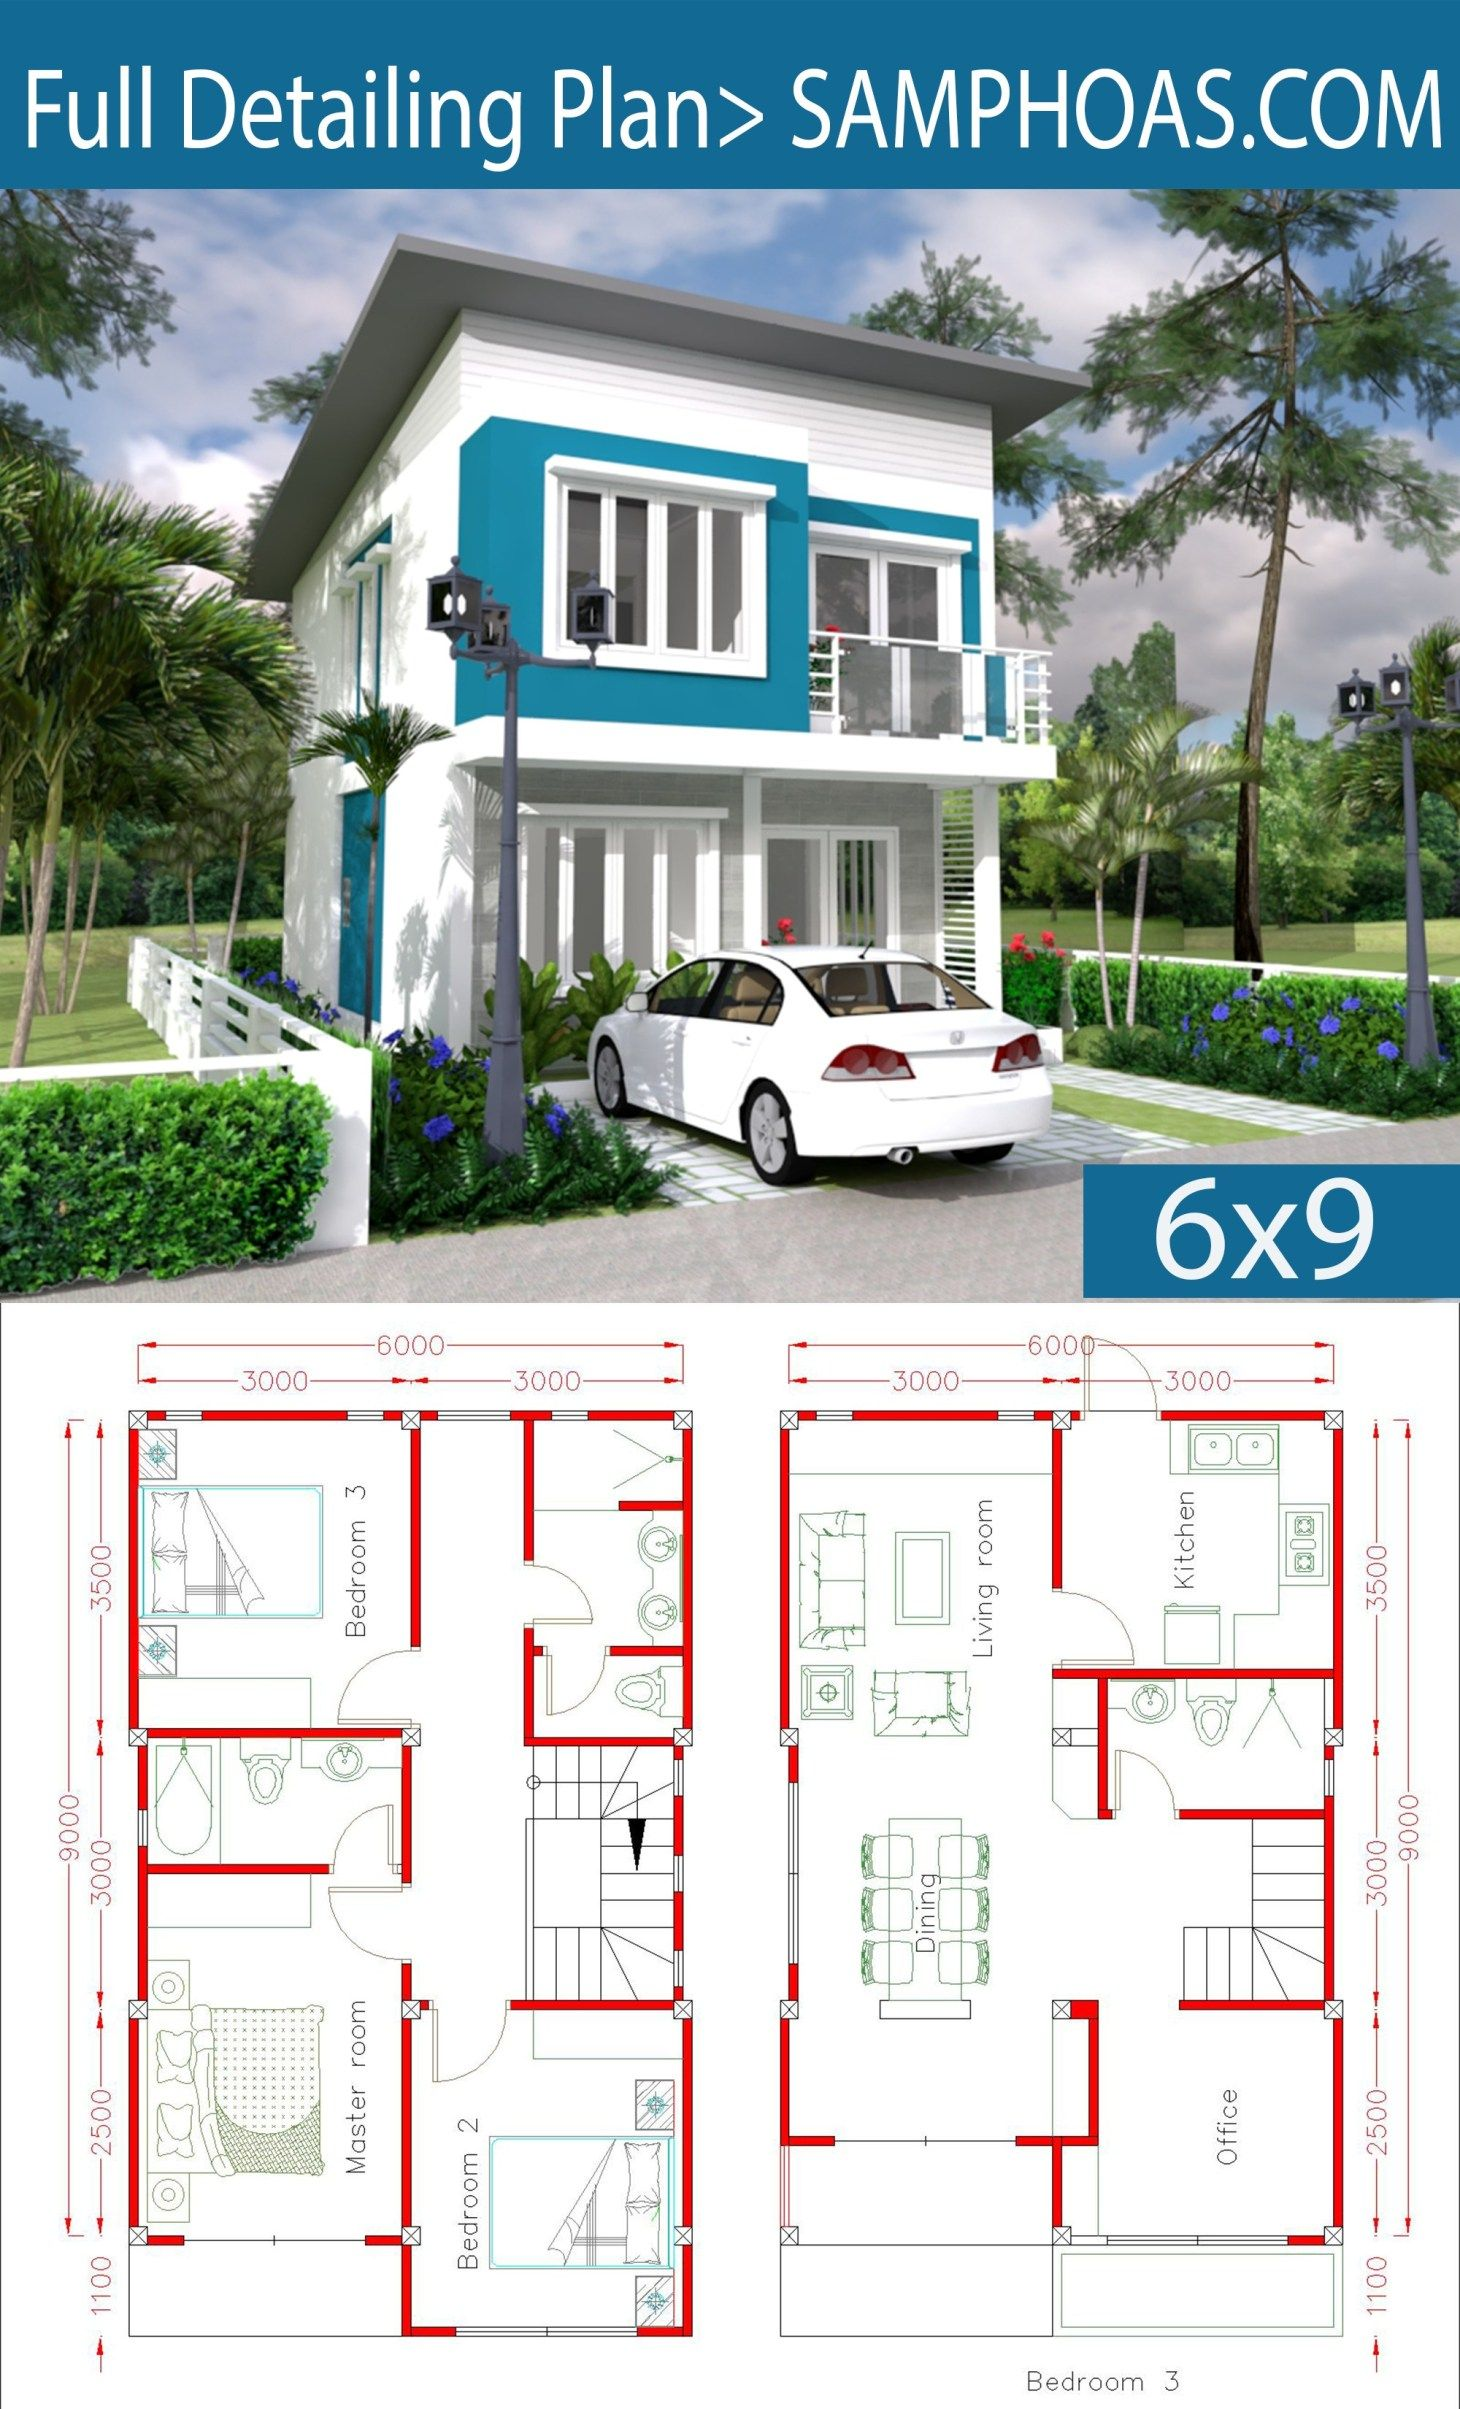 Simple Home Design Plan 6x9m With 3 Bedrooms Samphoas Com Simple House Design Simple House House Construction Plan